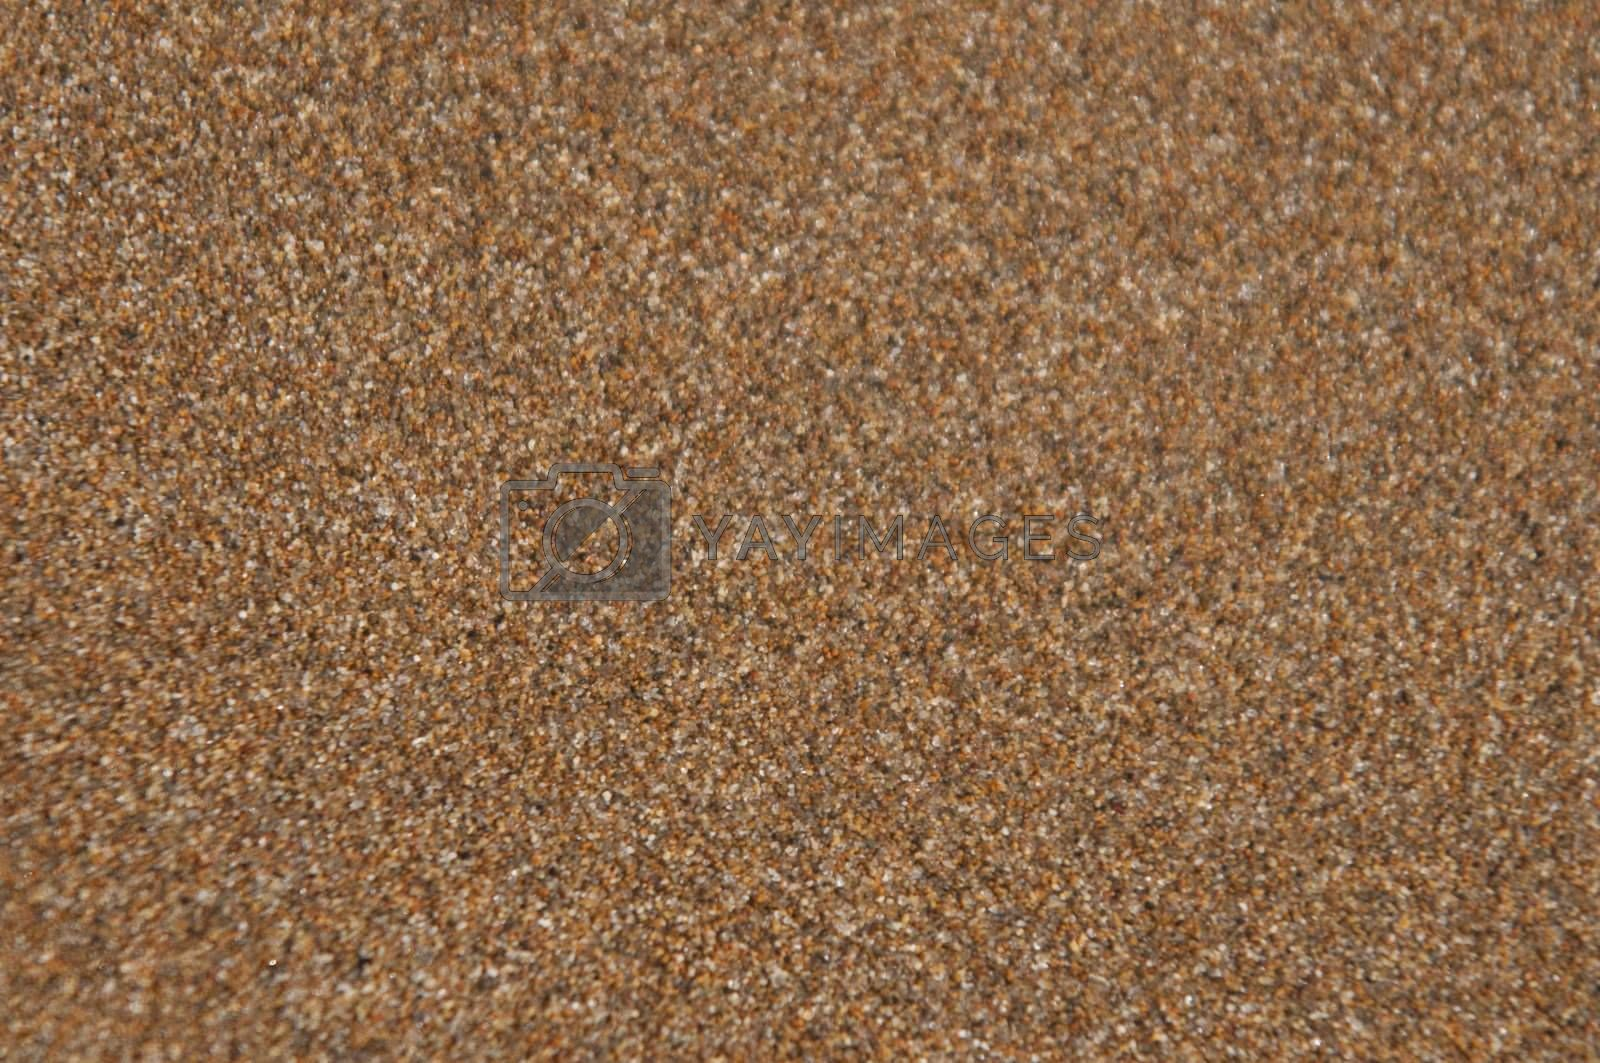 High resolution image. Sand texture. A sandy background. Natural material.